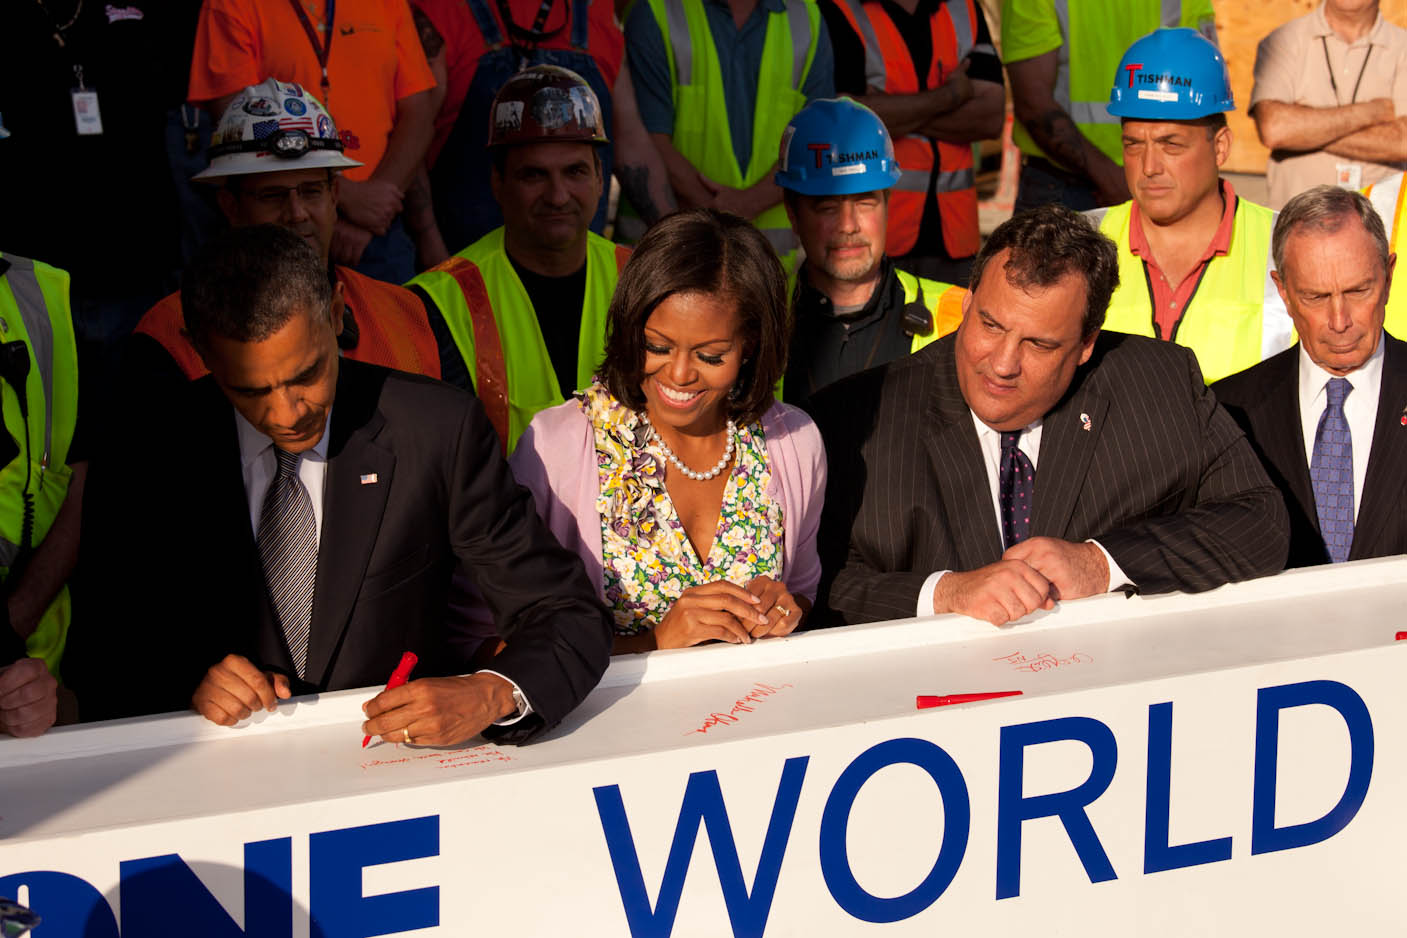 President Barack Obama signs a steel beam at the One World Trade Center site